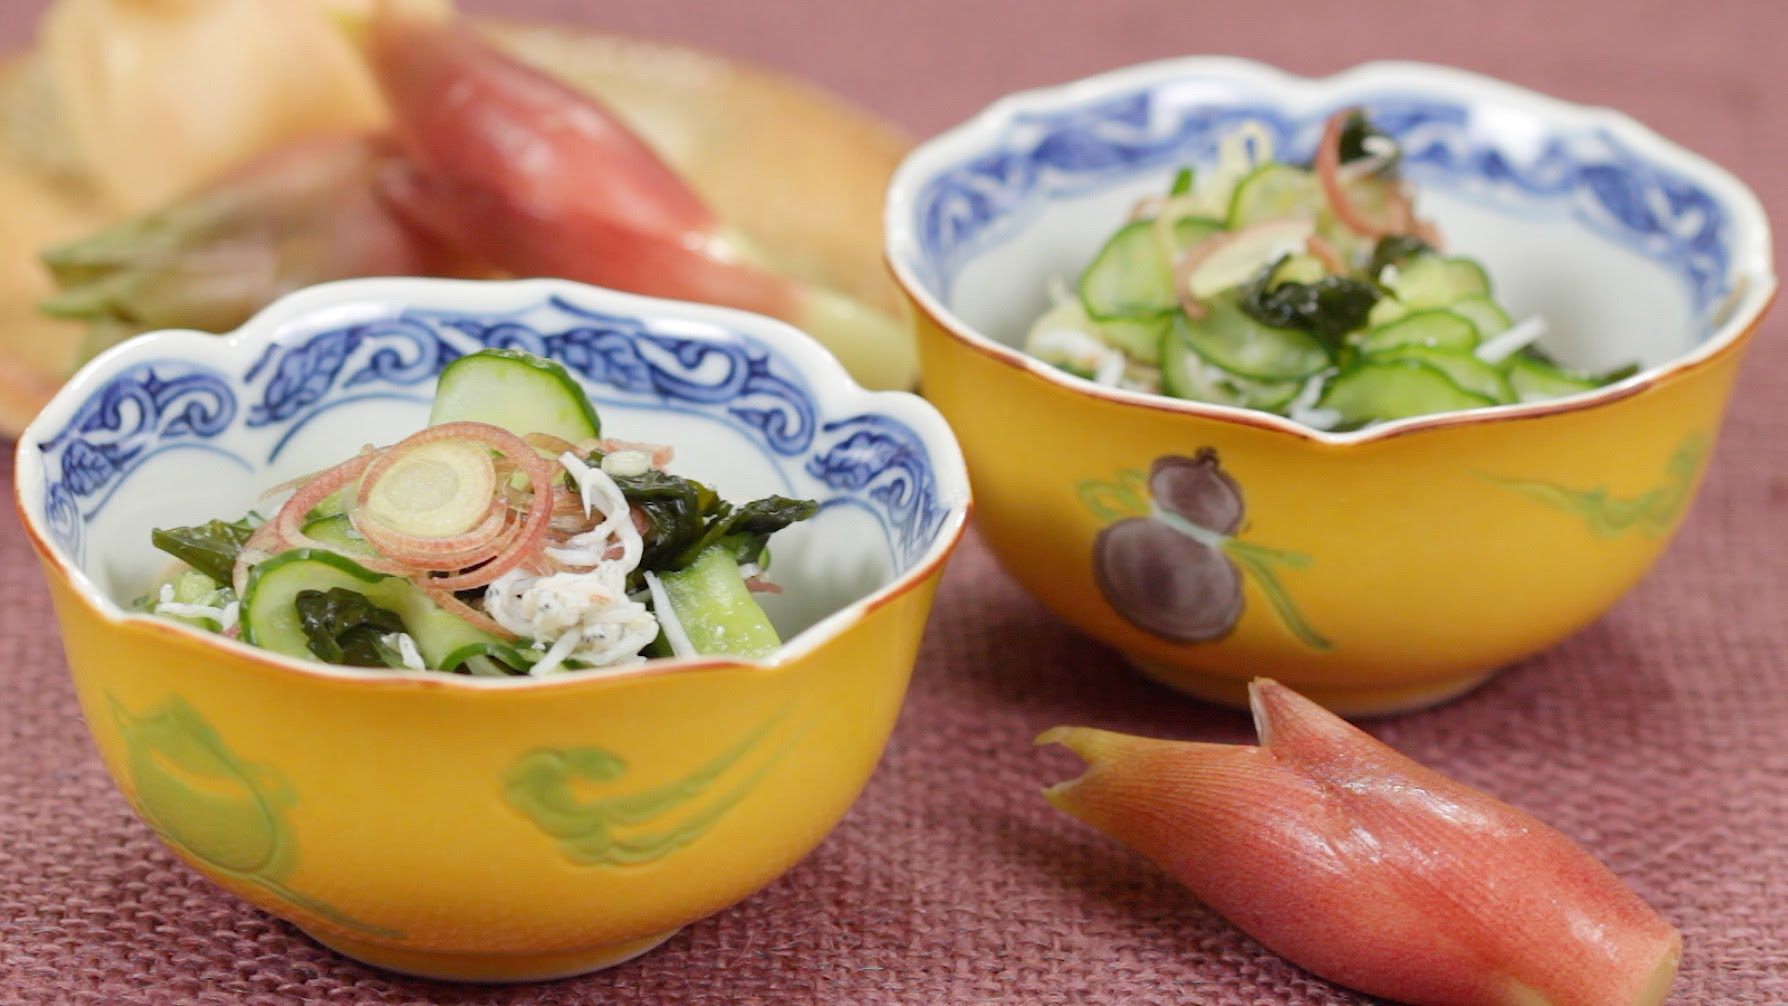 How to Make a Marinated Cucumber and Ginger Salad